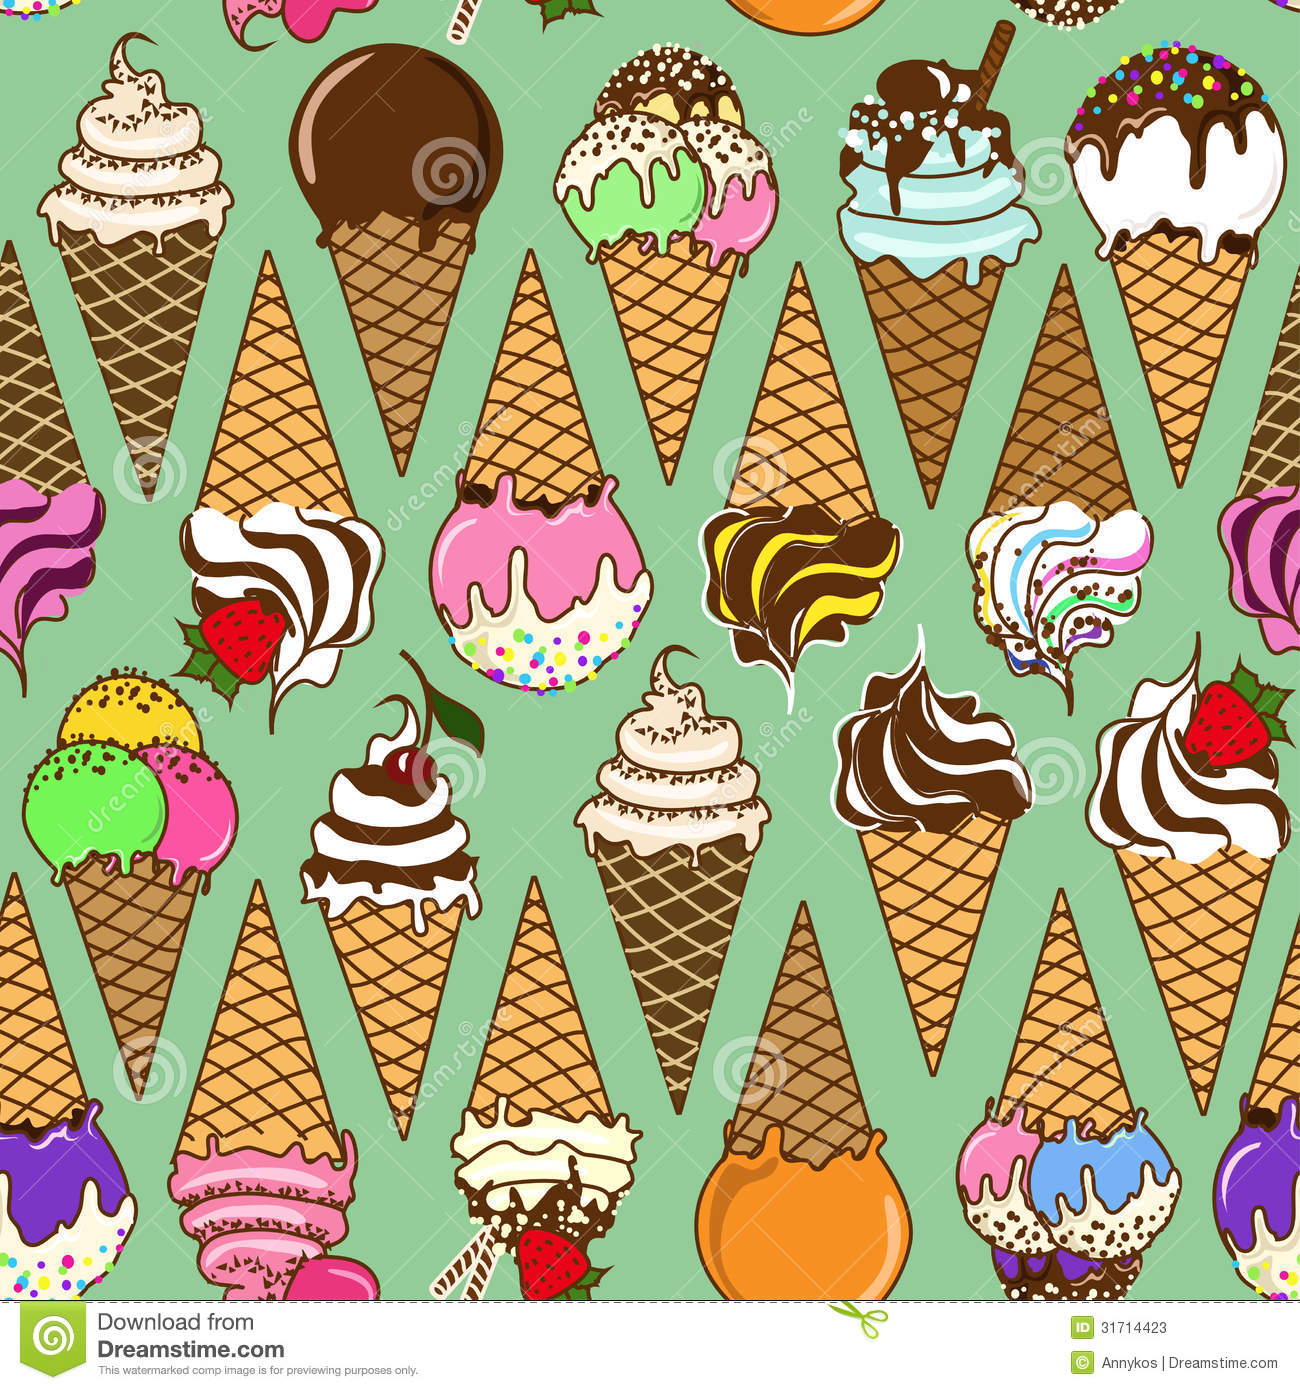 blues clues how to draw ice cream